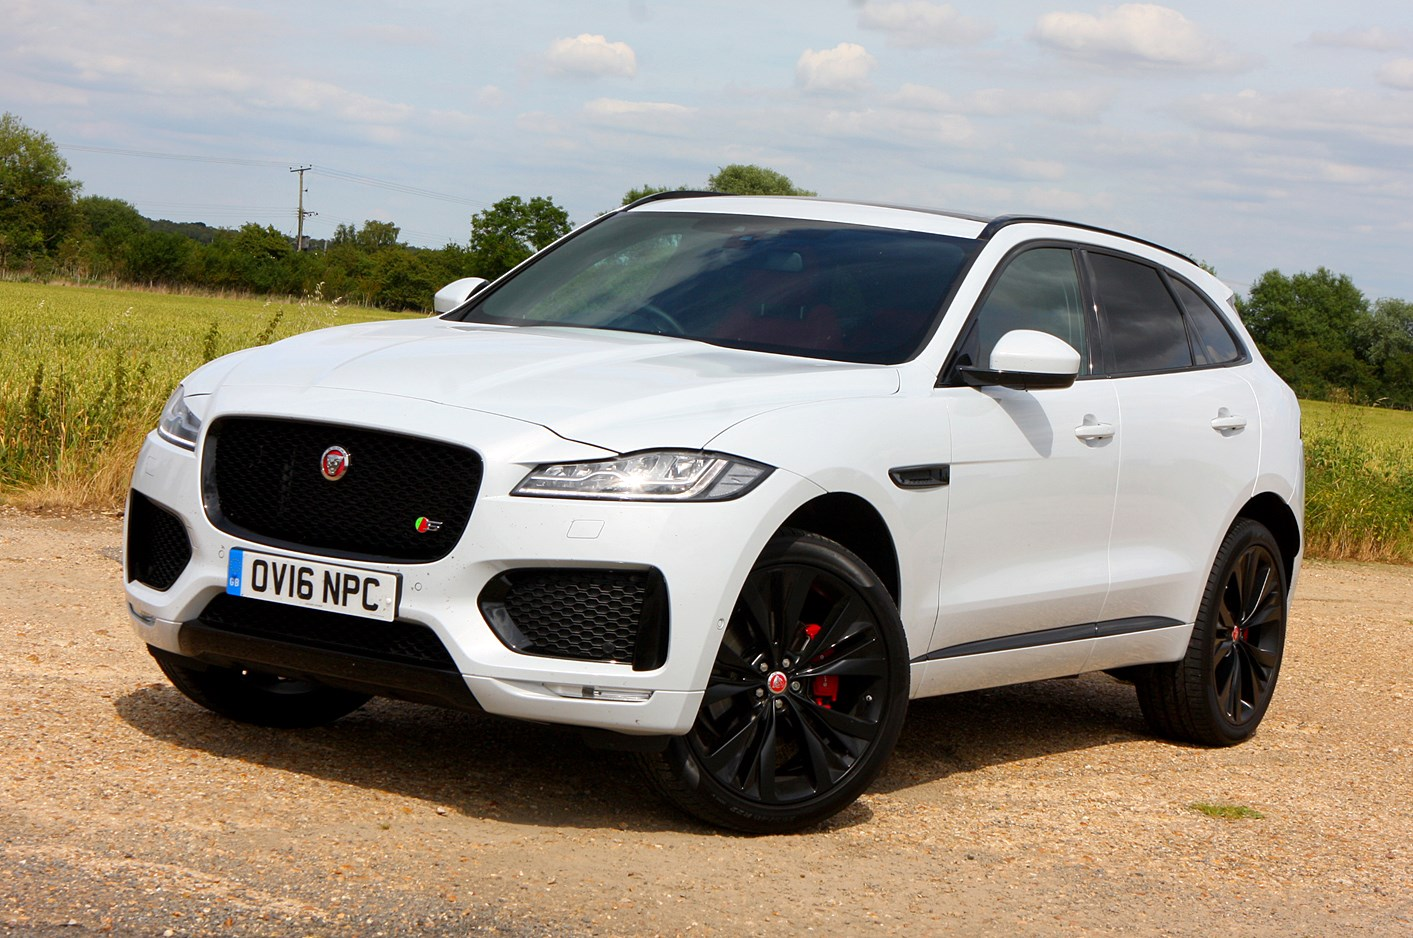 jaguar f pace 4x4 2016 photos parkers. Black Bedroom Furniture Sets. Home Design Ideas